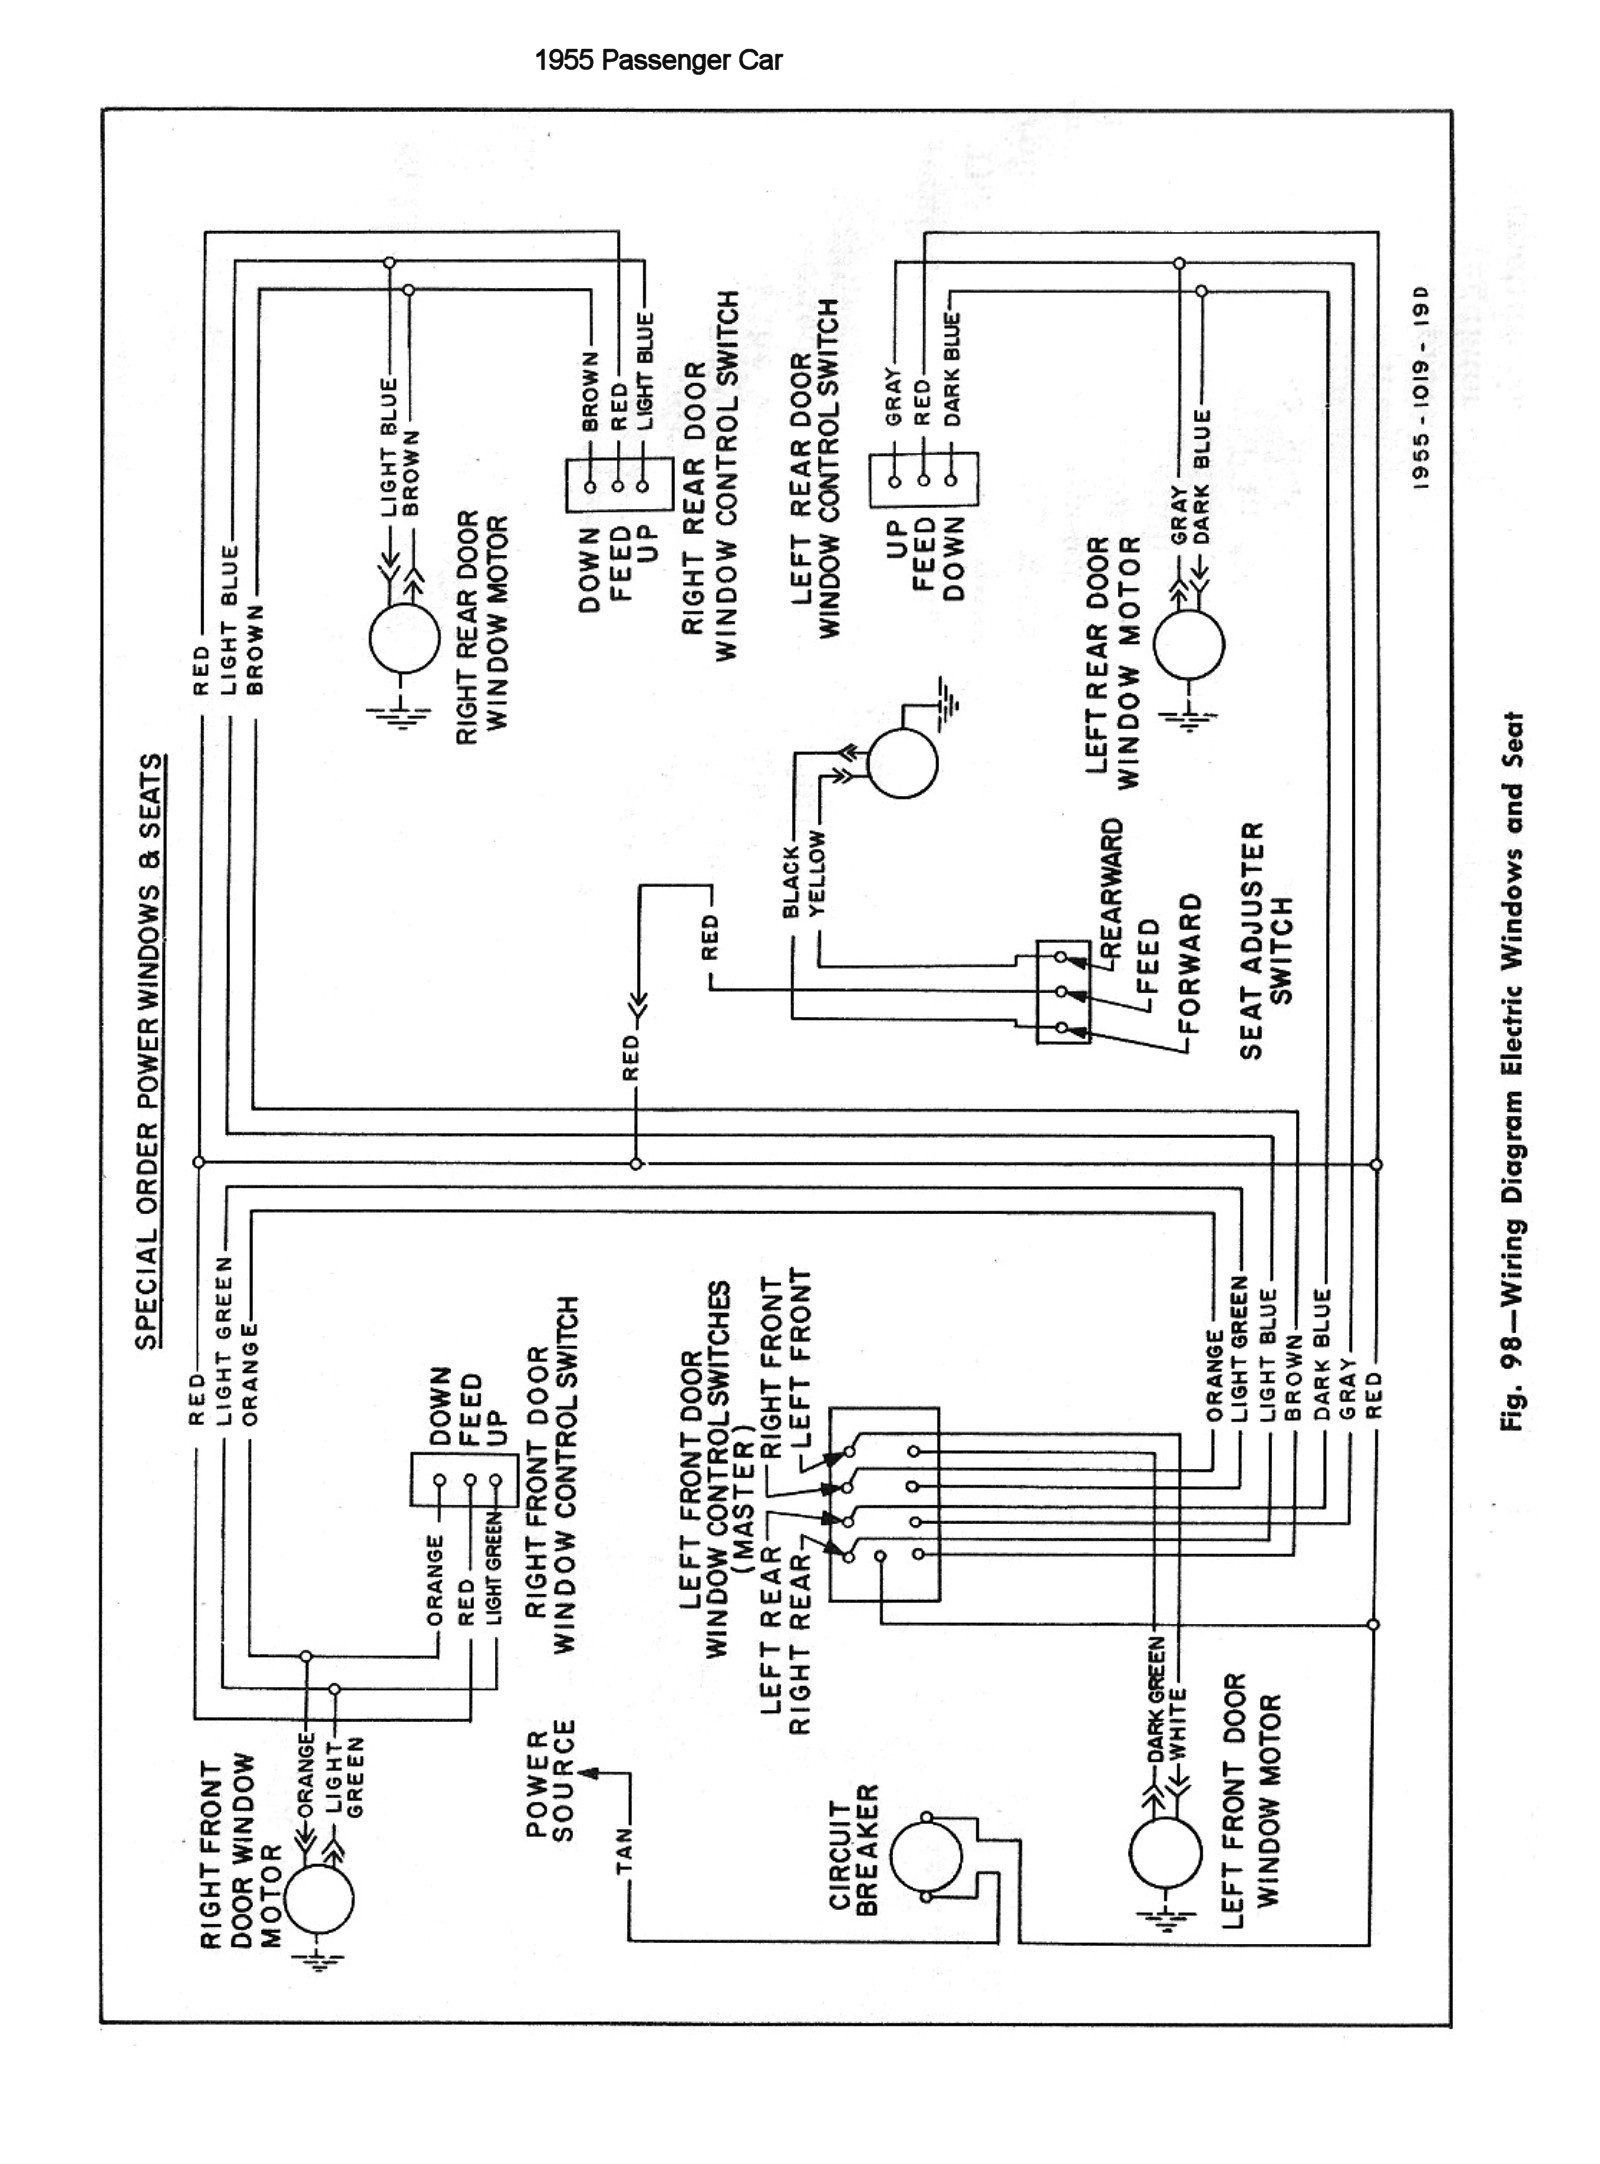 2005 chevy truck radio wire harness 1955 chevy turn signal wiring diagram | wiringdiagram.org ... #10